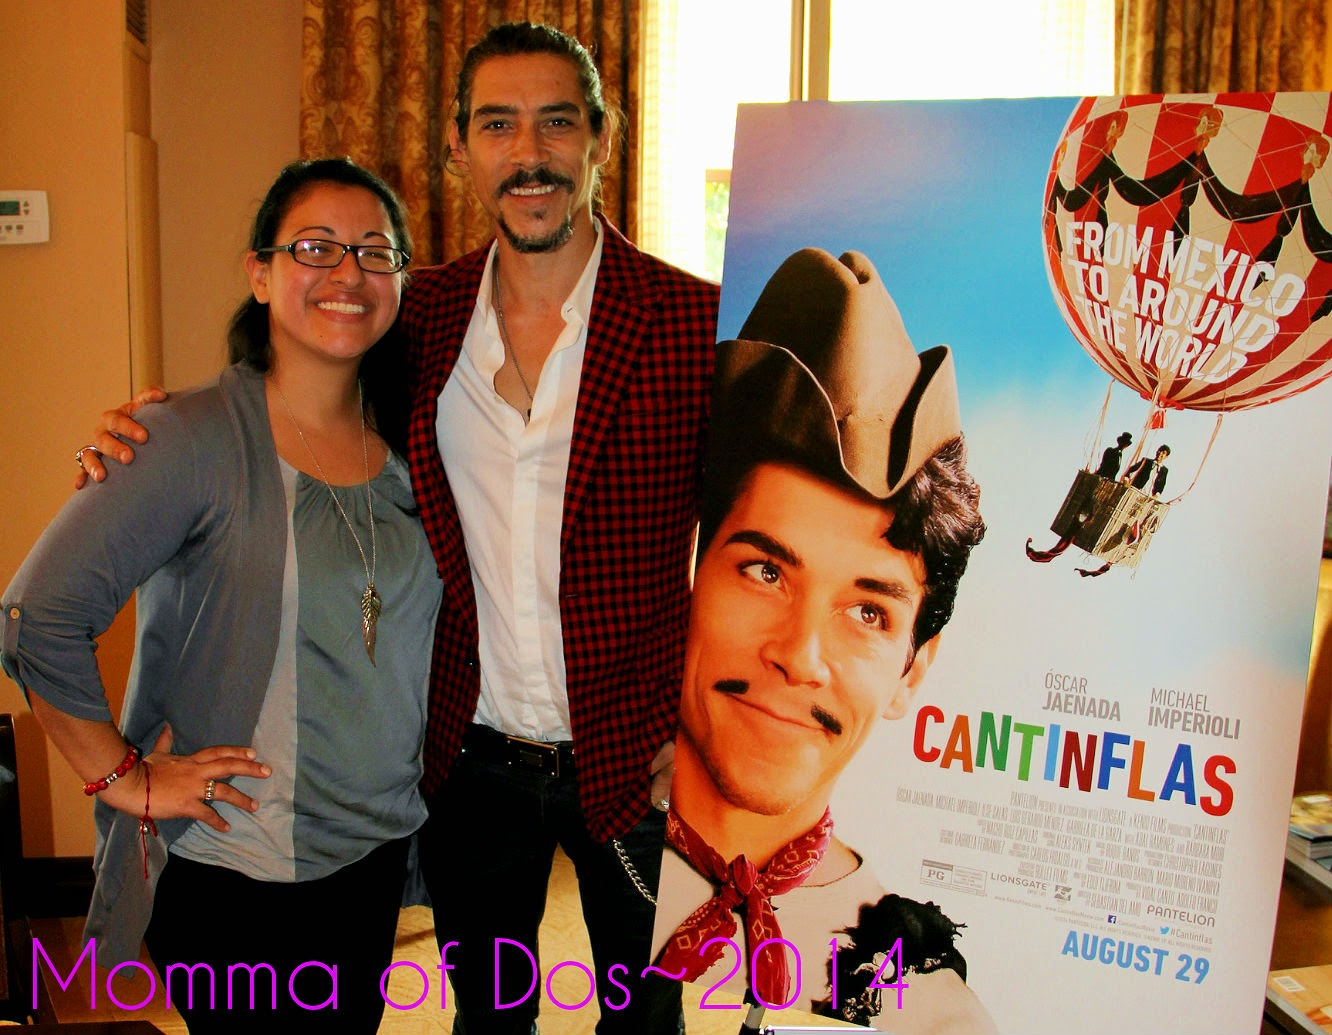 Momma of dos cantinflas la pelicula cantinflas